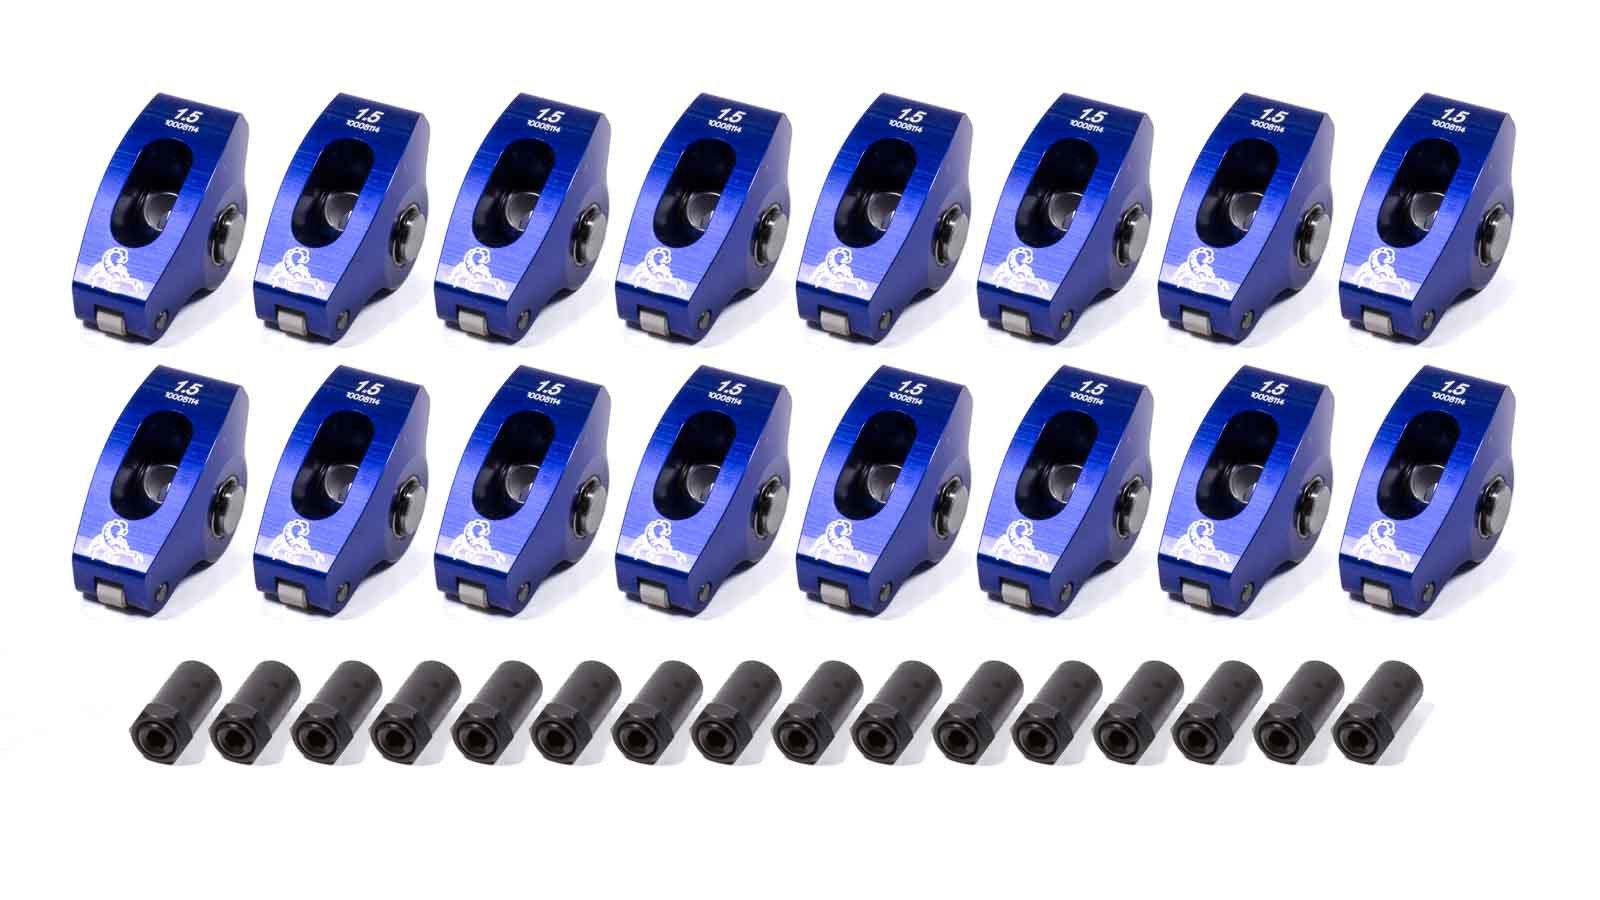 Scorpion Performance 1011 Rocker Arm, Race Series, 7/16 in Stud Mount, 1.50 Ratio, Full Roller, Aluminum, Blue Anodize, Small Block Chevy, Set of 16